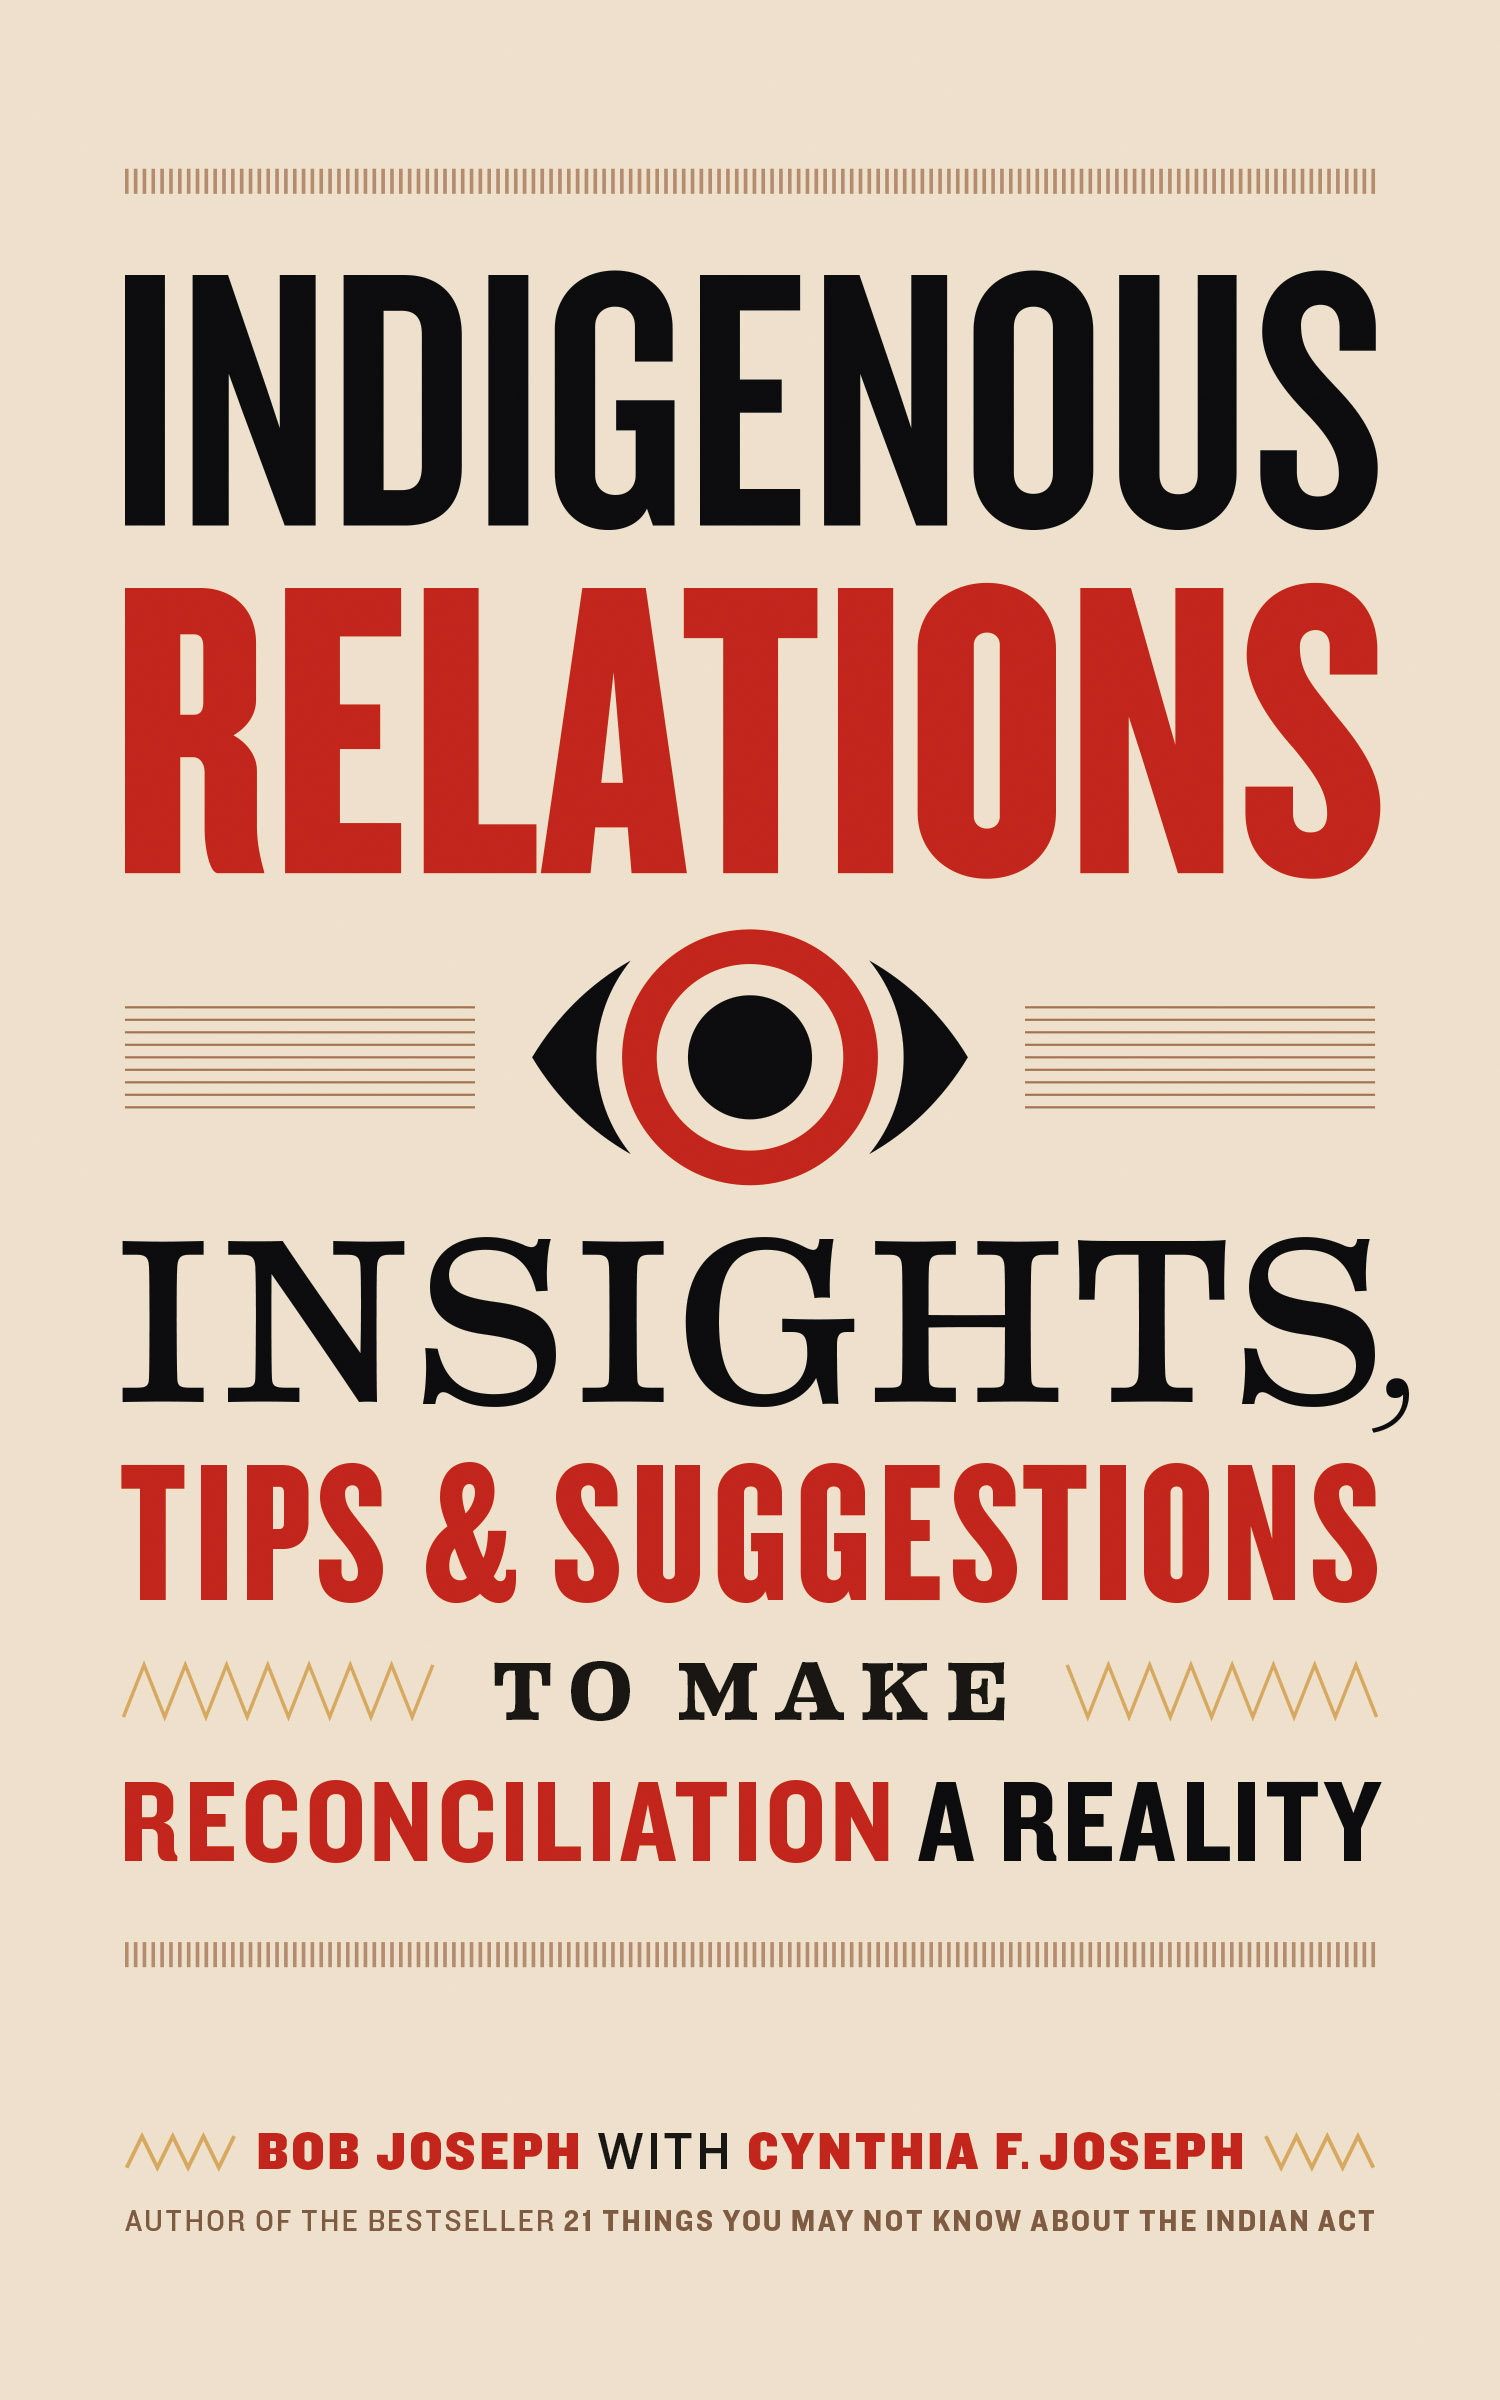 Indigenous Relations - Insights, Tips & Suggestions to Make Reconciliation a Reality